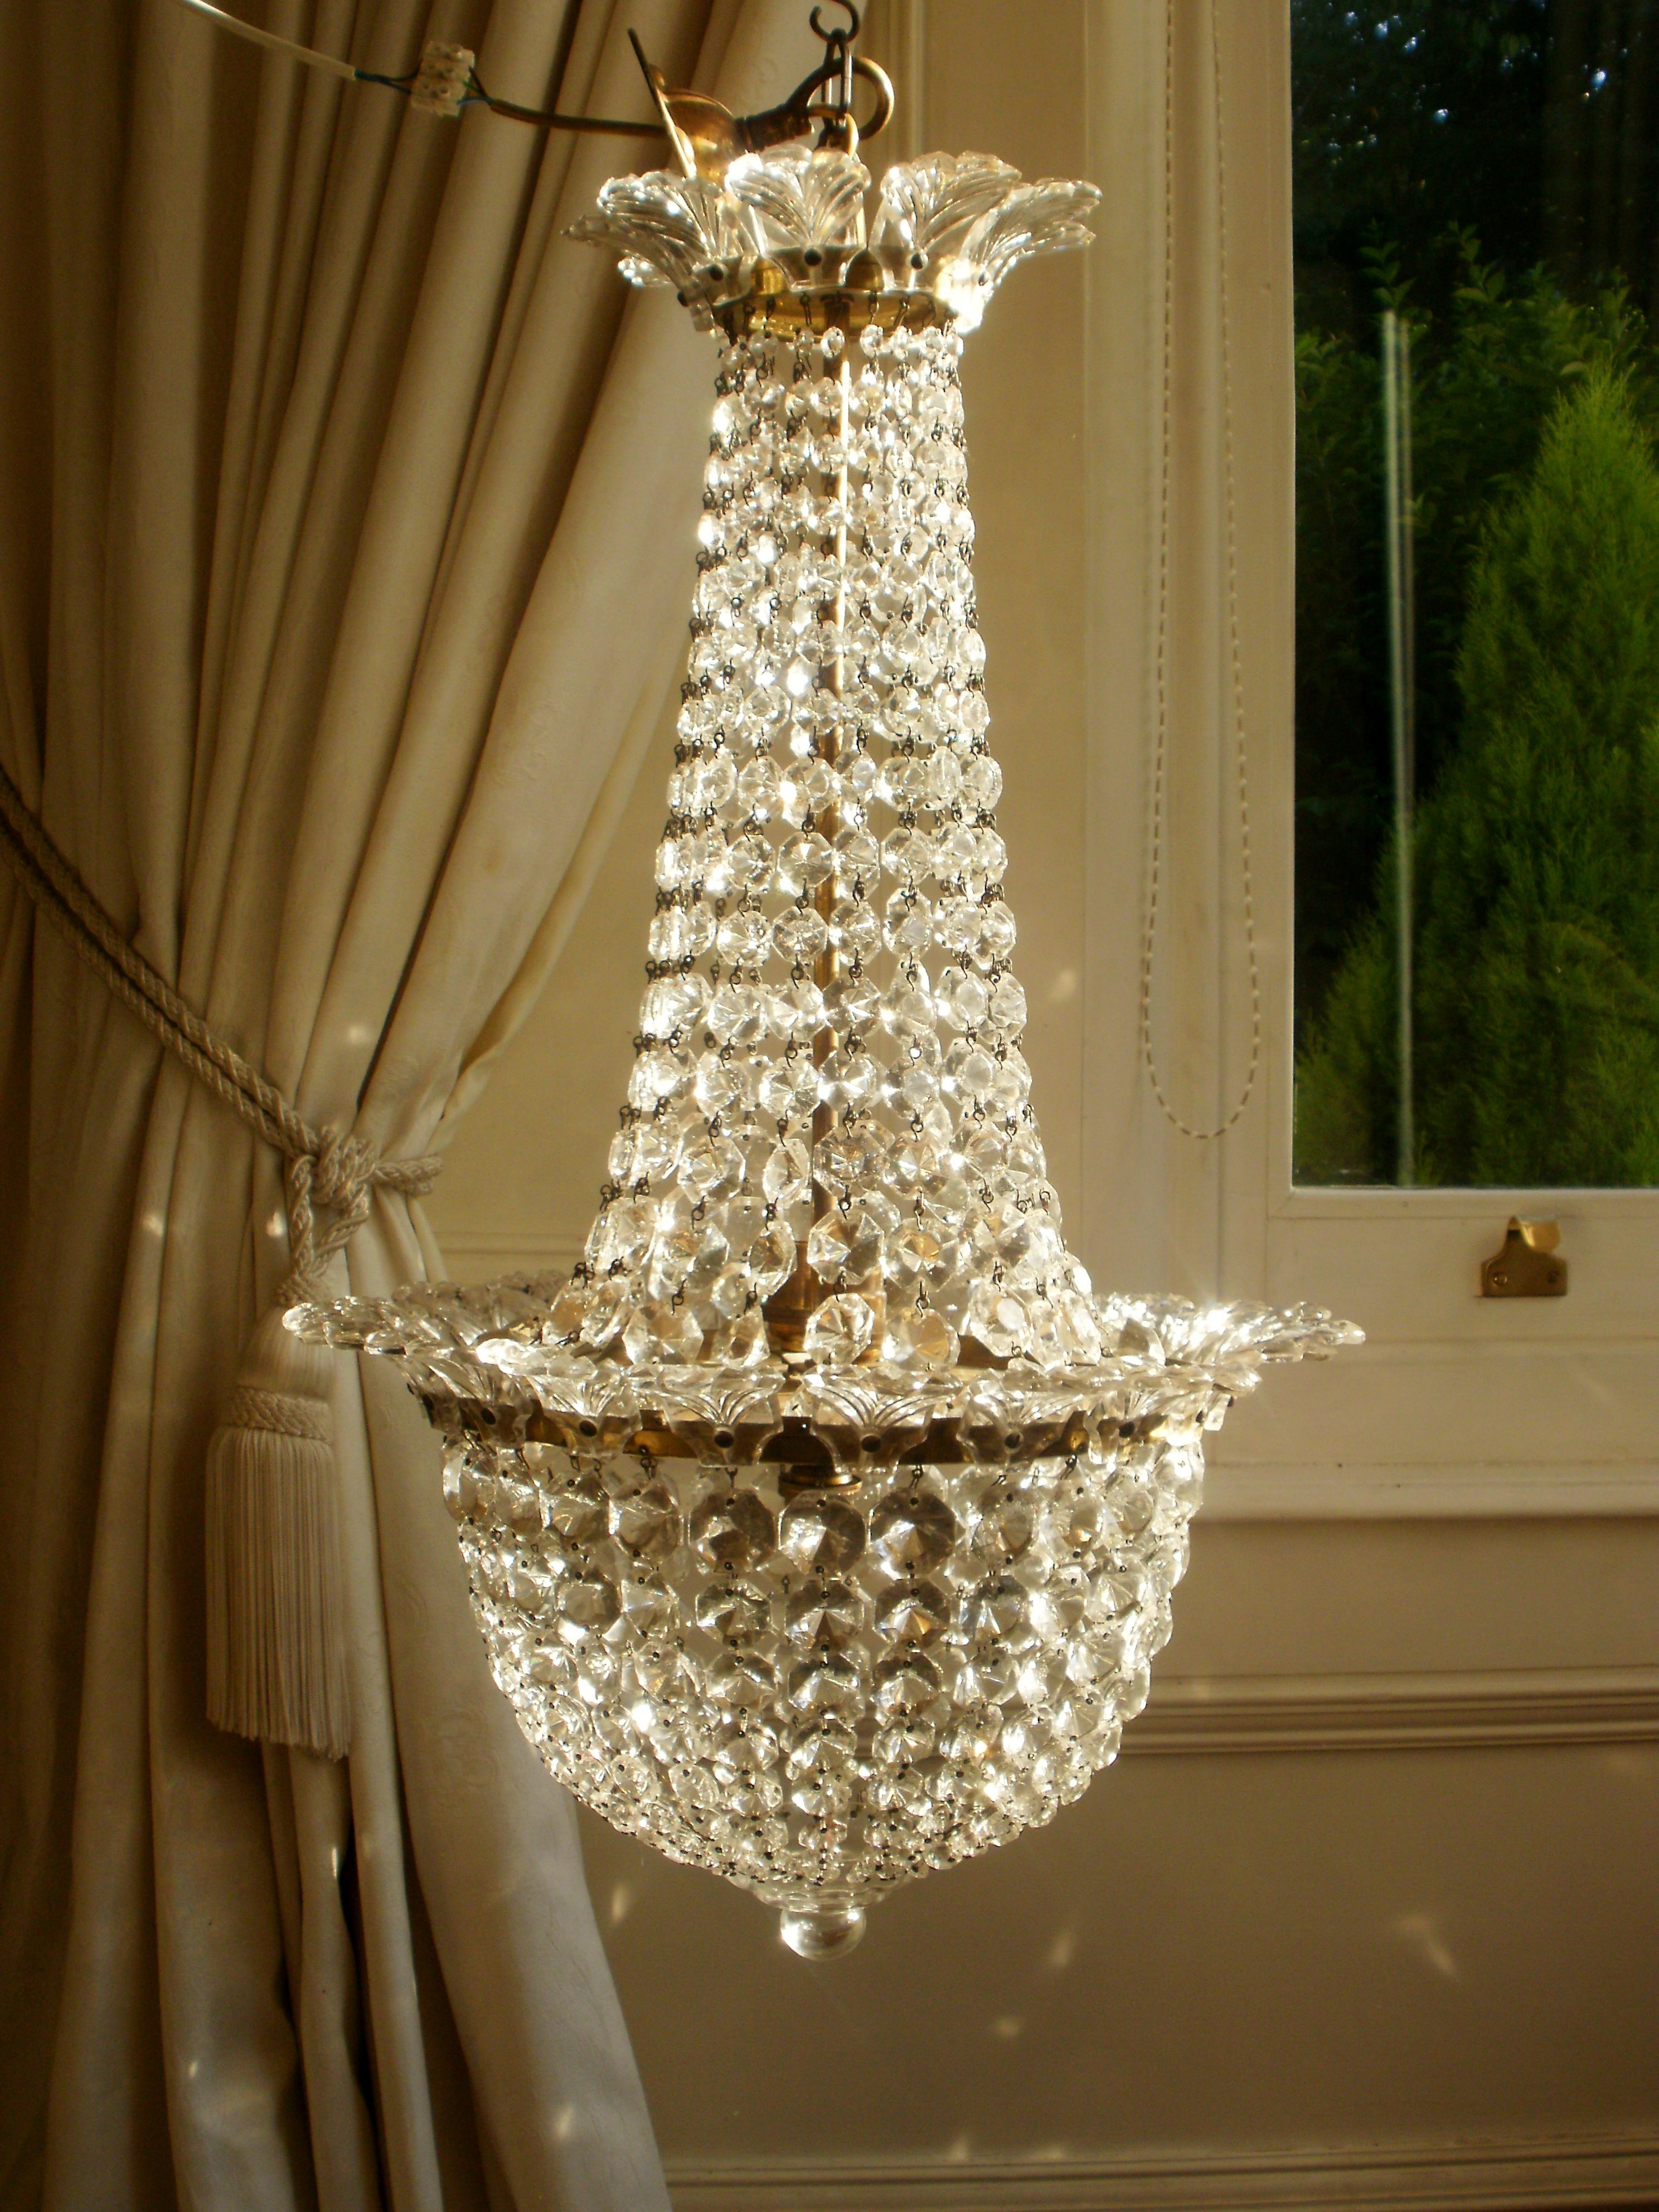 Vintage French Empire Crystal Chandelier Chandelier